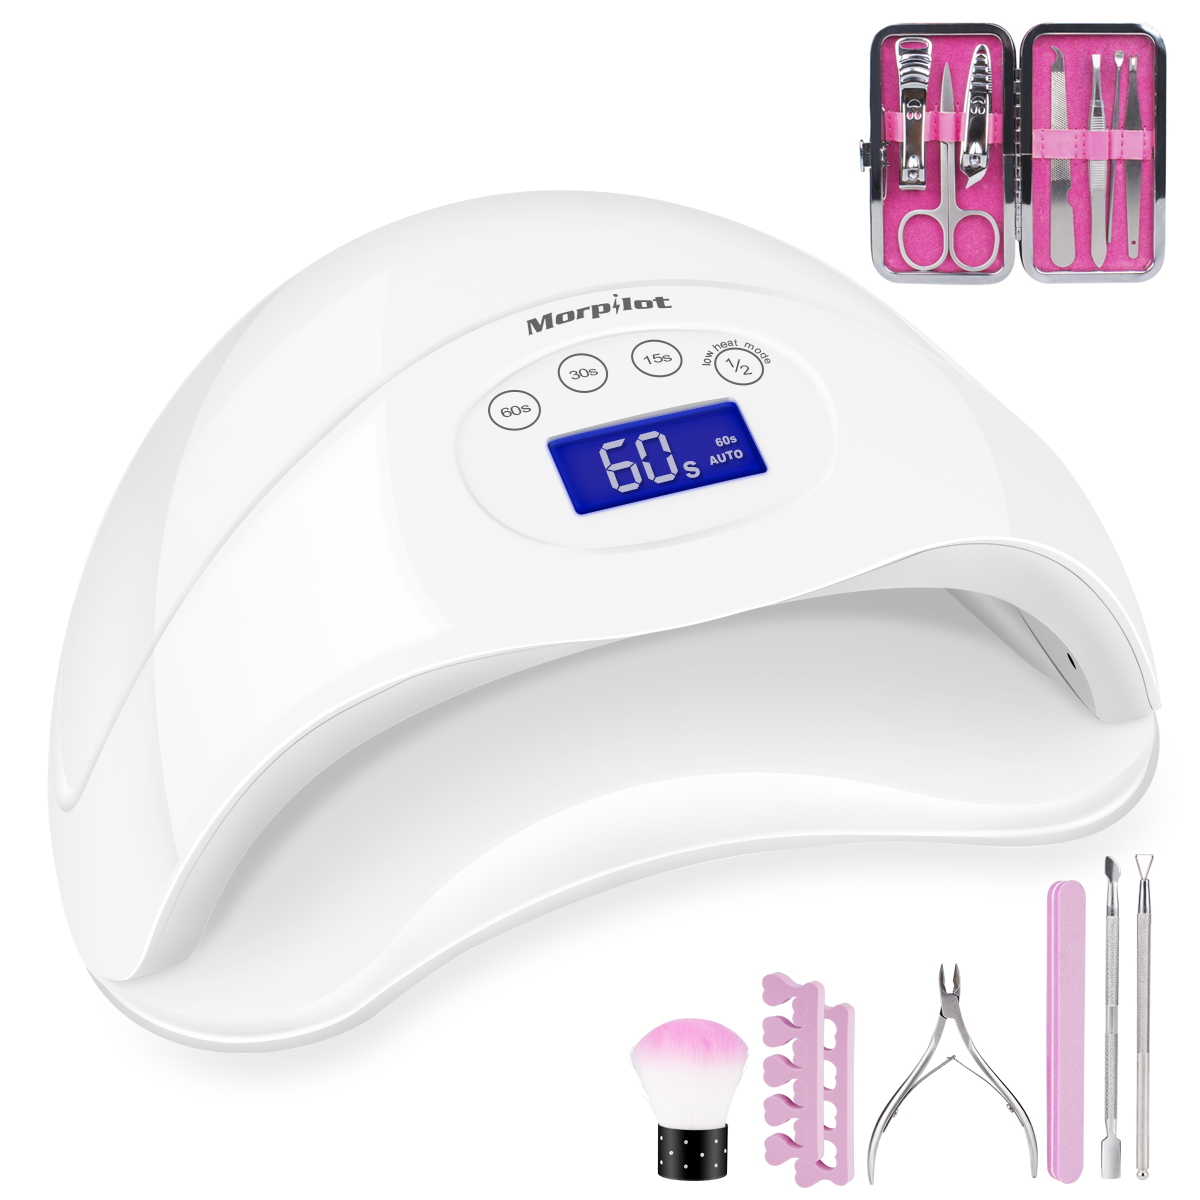 Morpilot 48W LED Gel Nail Lamp UV Nail Dryer Lamp Curing for gel and regular polish with 4 Timer Setting Sensor Upgraded, Professional Fingernail & Toenail Gel Curing Nail Art Painting Salon Tools